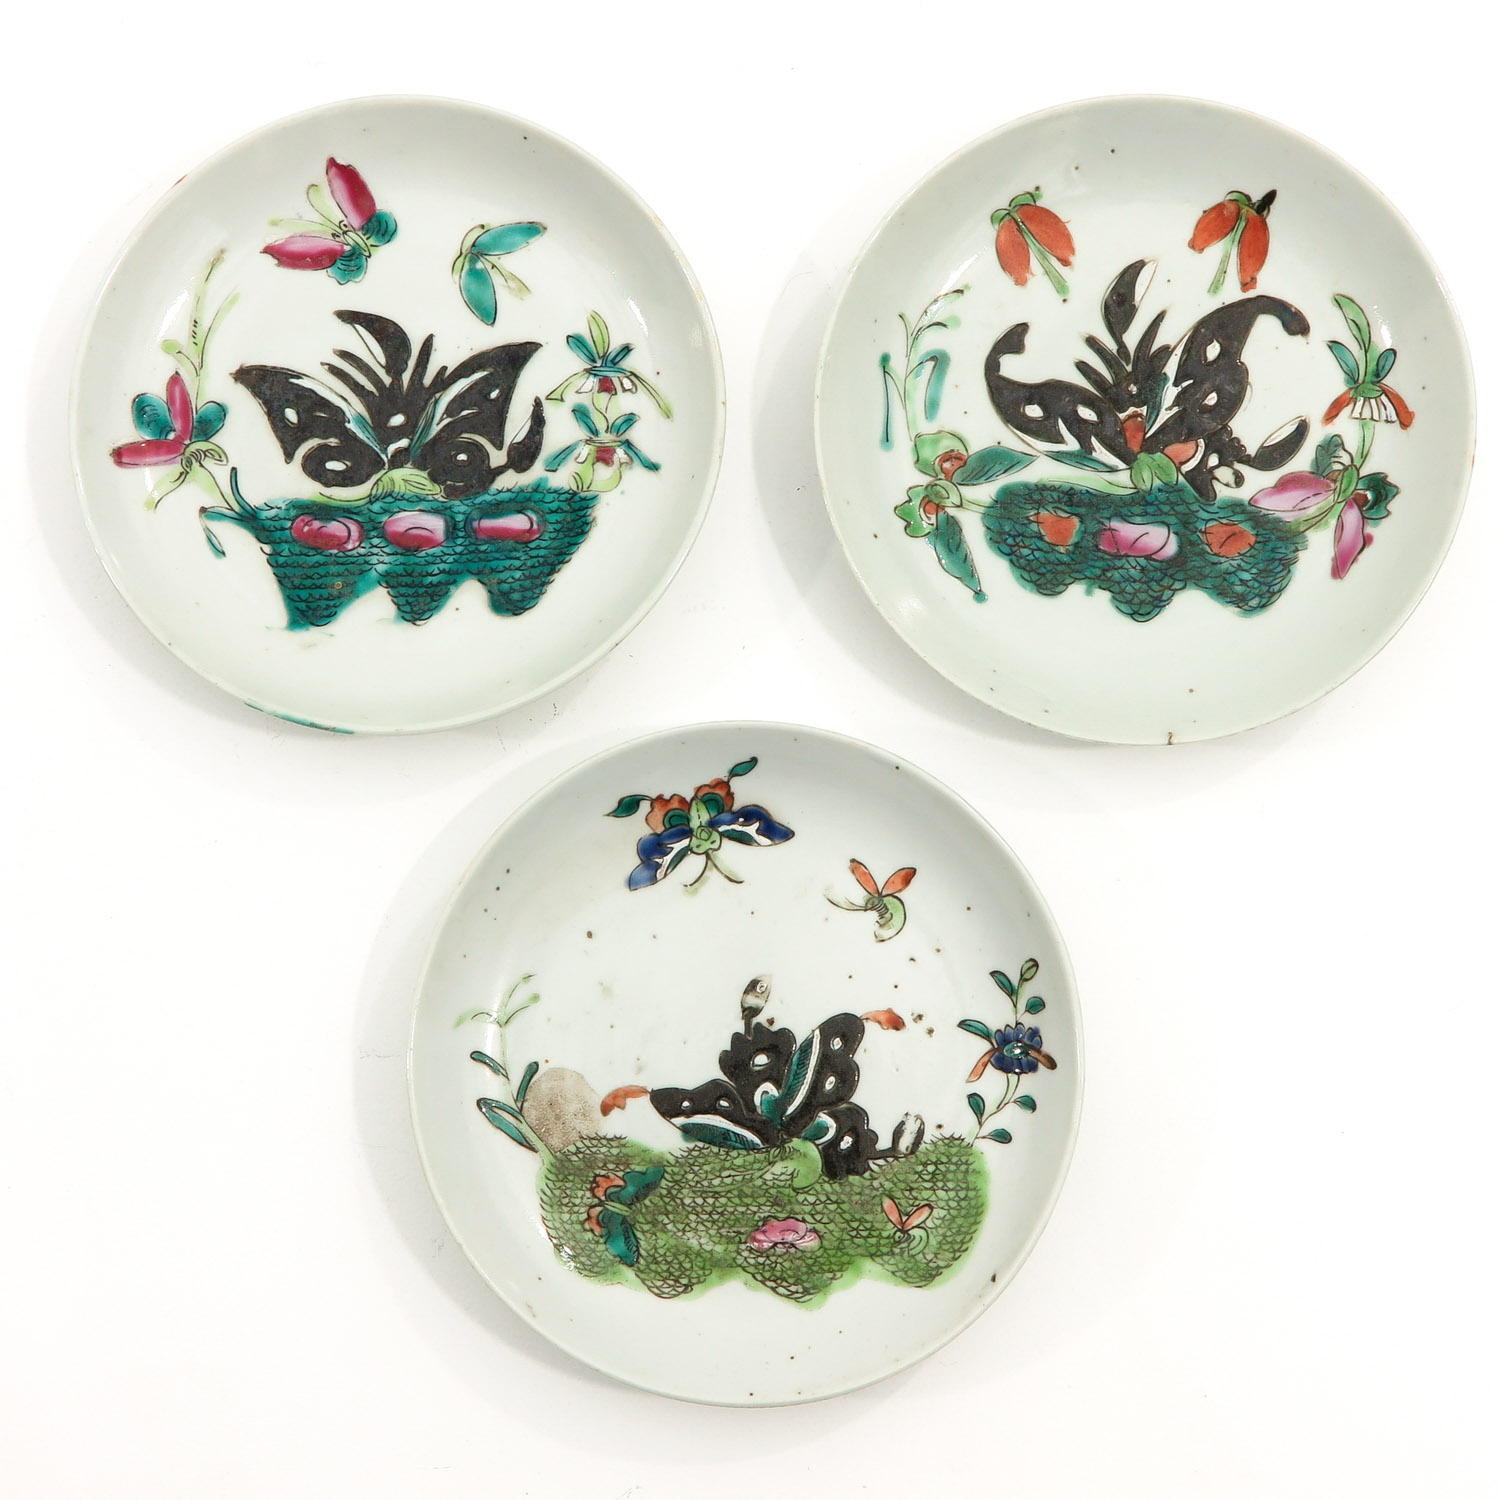 A Collection of 10 Polychrome Decor Plates - Image 7 of 10